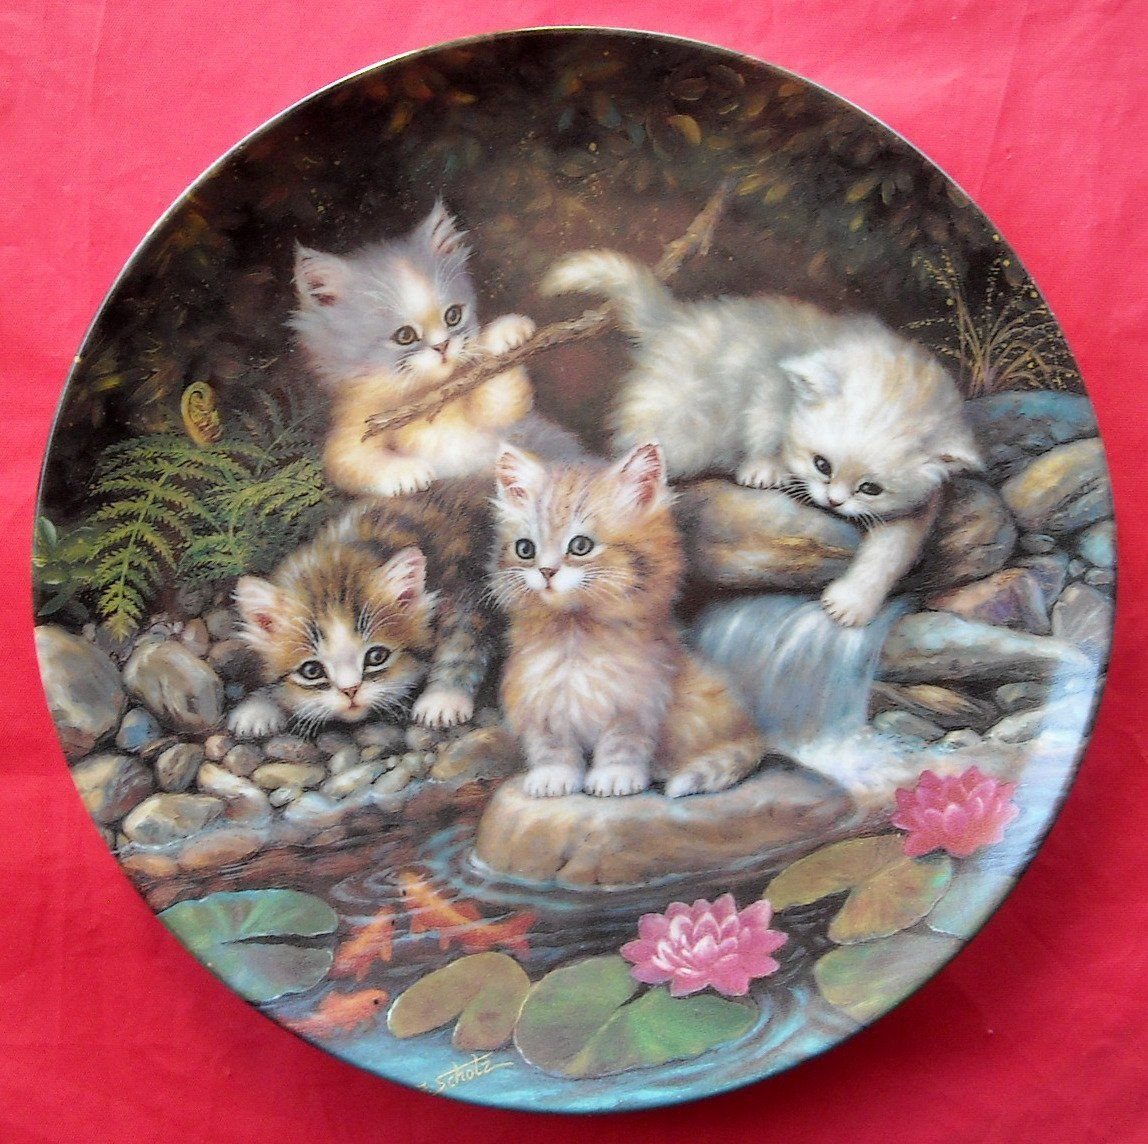 Kahla Kitten Expeditions Lily Pond Porcelain Plate 1996 Lily Pond Kitten Pond